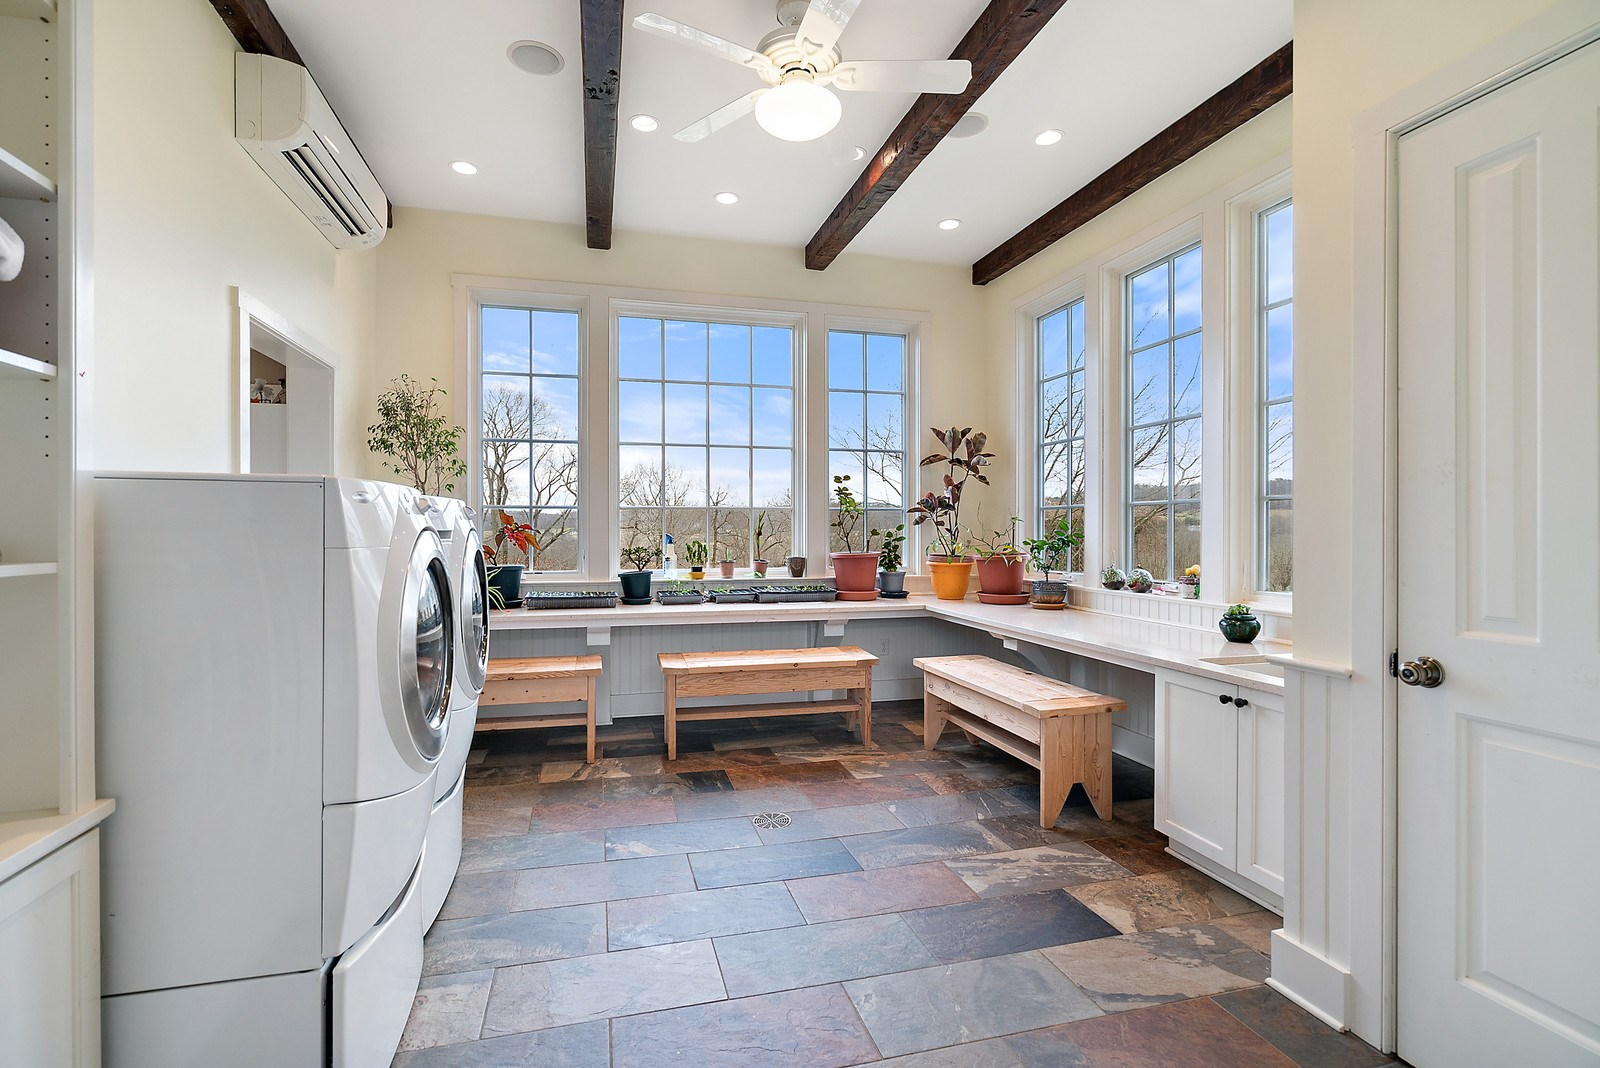 Laundry & Craft room